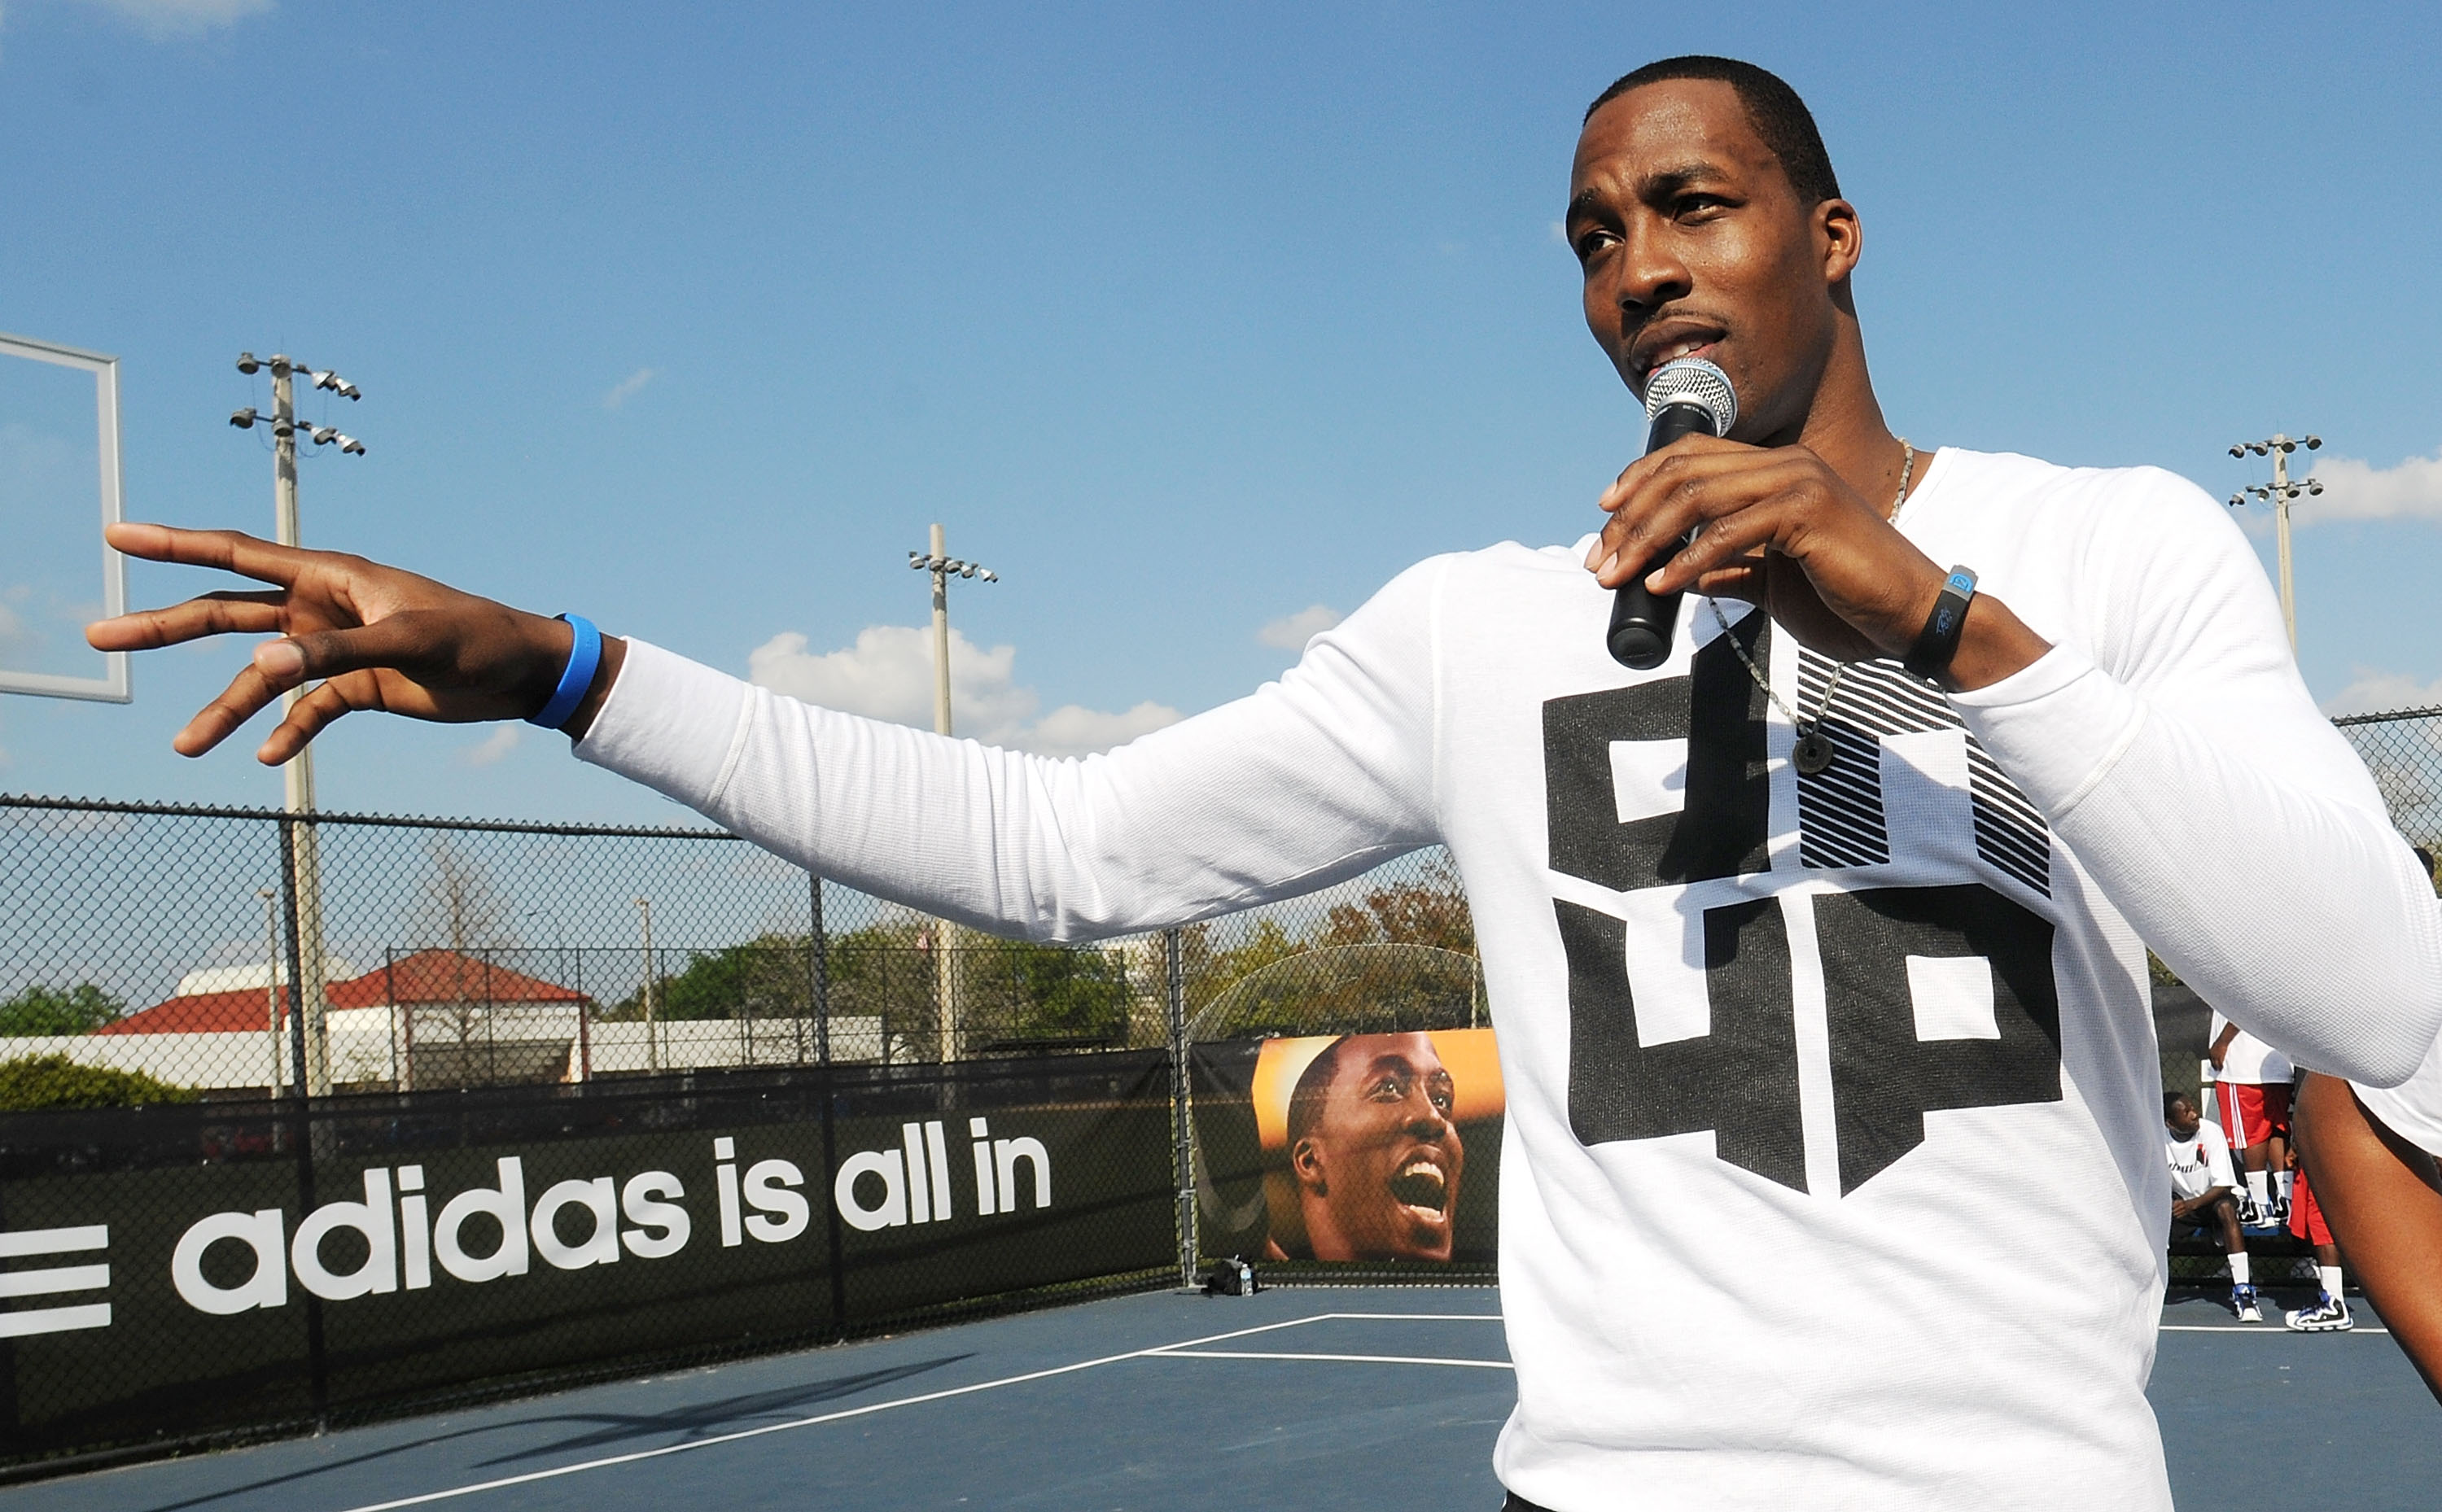 ORLANDO, FL - MARCH 17:  NBA All-Star Dwight Howard shows off his game face at an Orlando community center where he was on hand to capture kids' game faces for the next adidas commercial on March 17, 2011 in Orlando, Florida. Fans can visit www.facebook.c